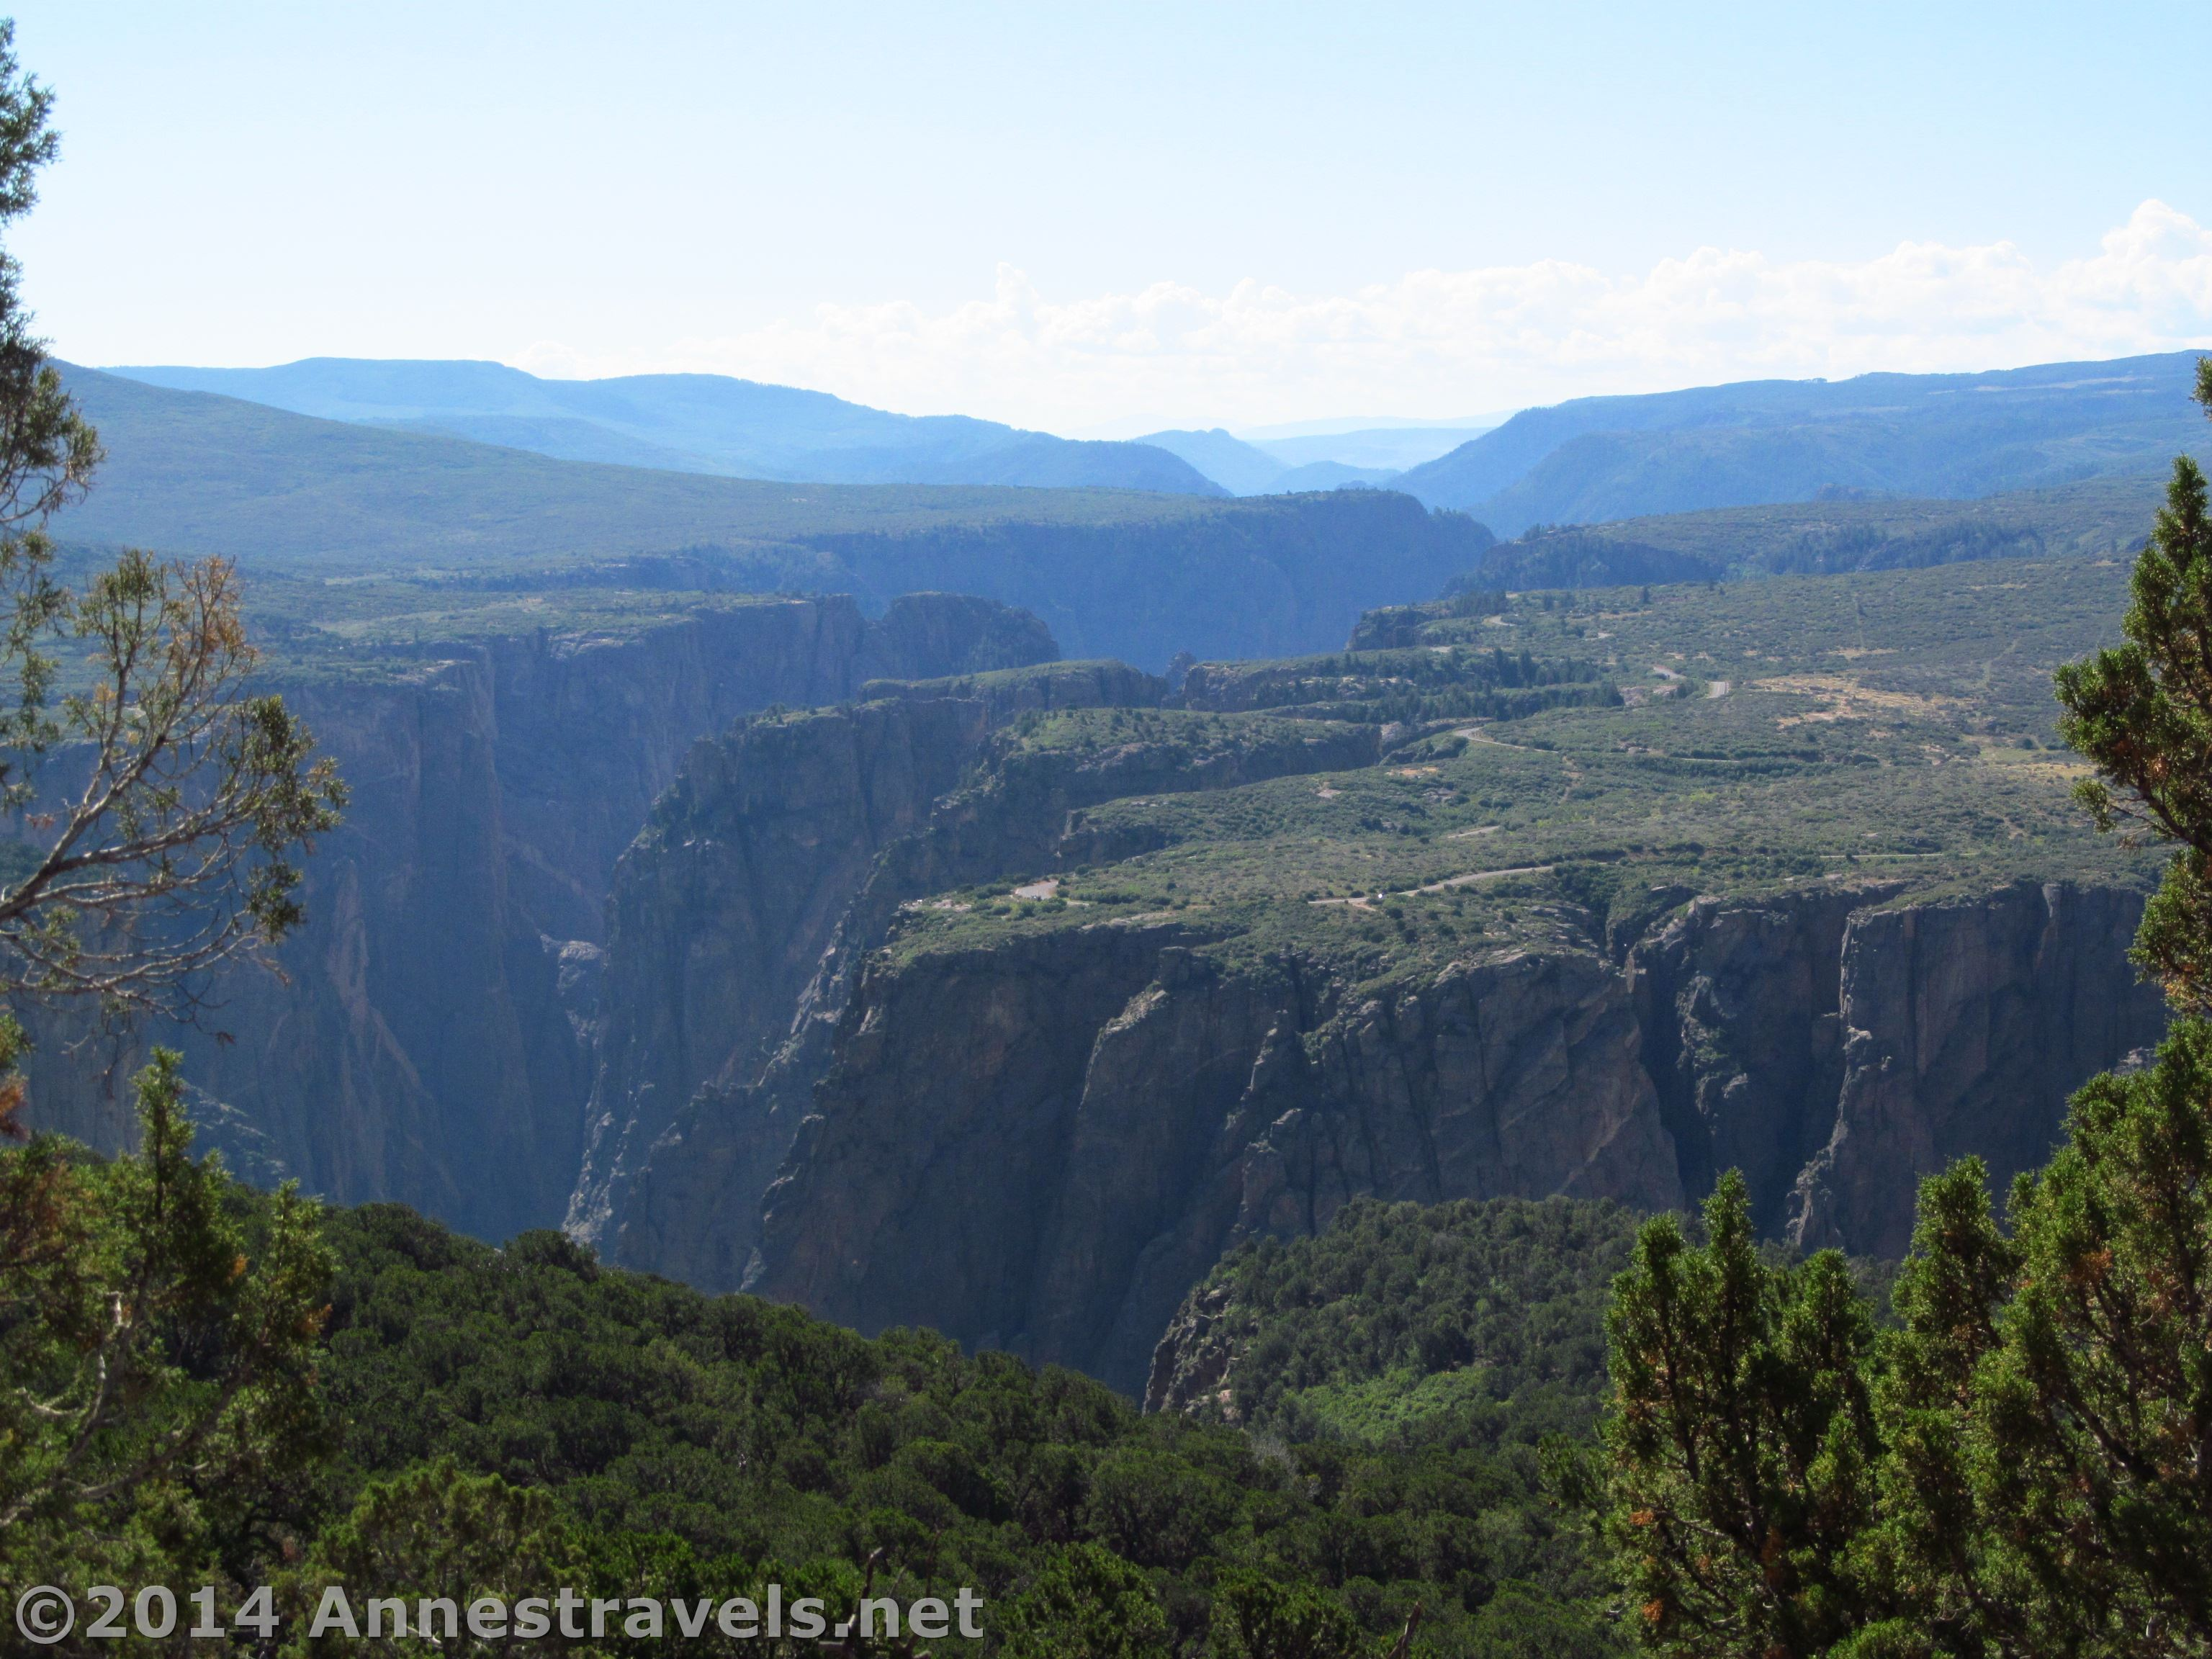 Hiking Up Green Mountain In Black Canyon Of The Gunnison